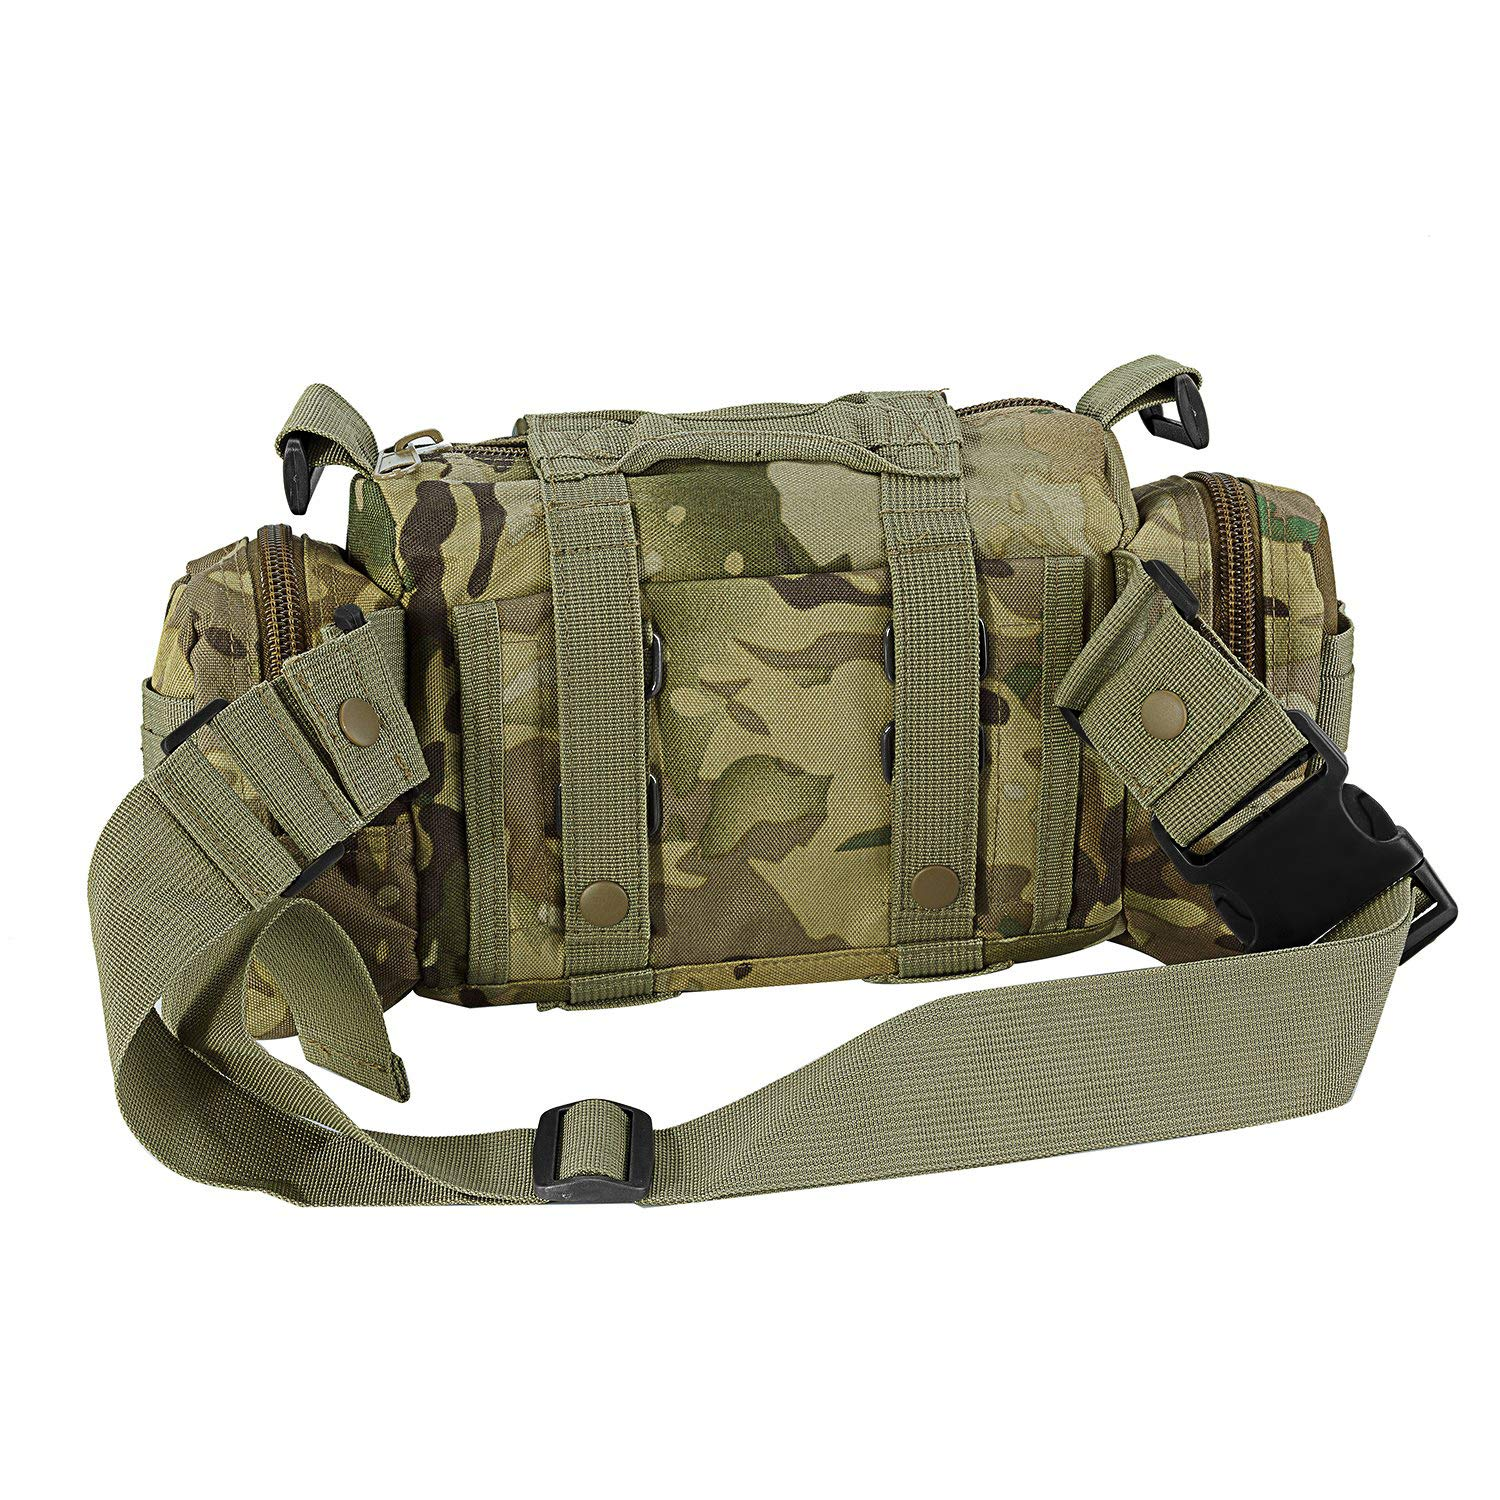 CVLIFE 60L Built-up Military Tactical Army Outdoor Backpacks Assault Combat Rucksack Heavy Bag CP by CVLIFE (Image #7)